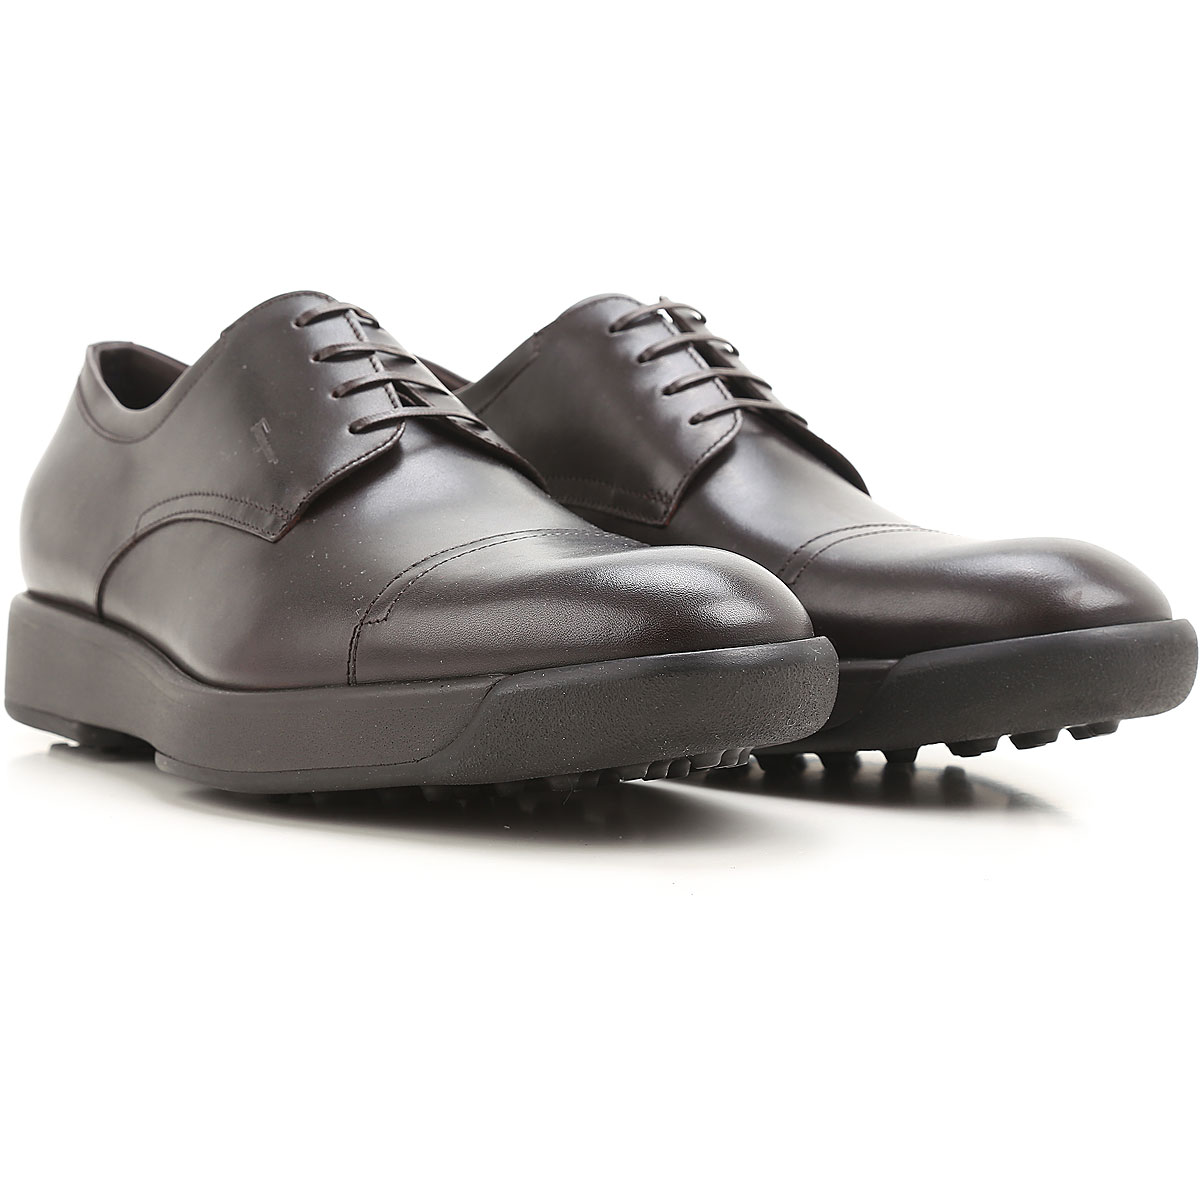 Image of Salvatore Ferragamo Lace Up Shoes for Men Oxfords, Derbies and Brogues On Sale in Outlet, Dark Chocolate, Leather, 2017, 7 9 9.5